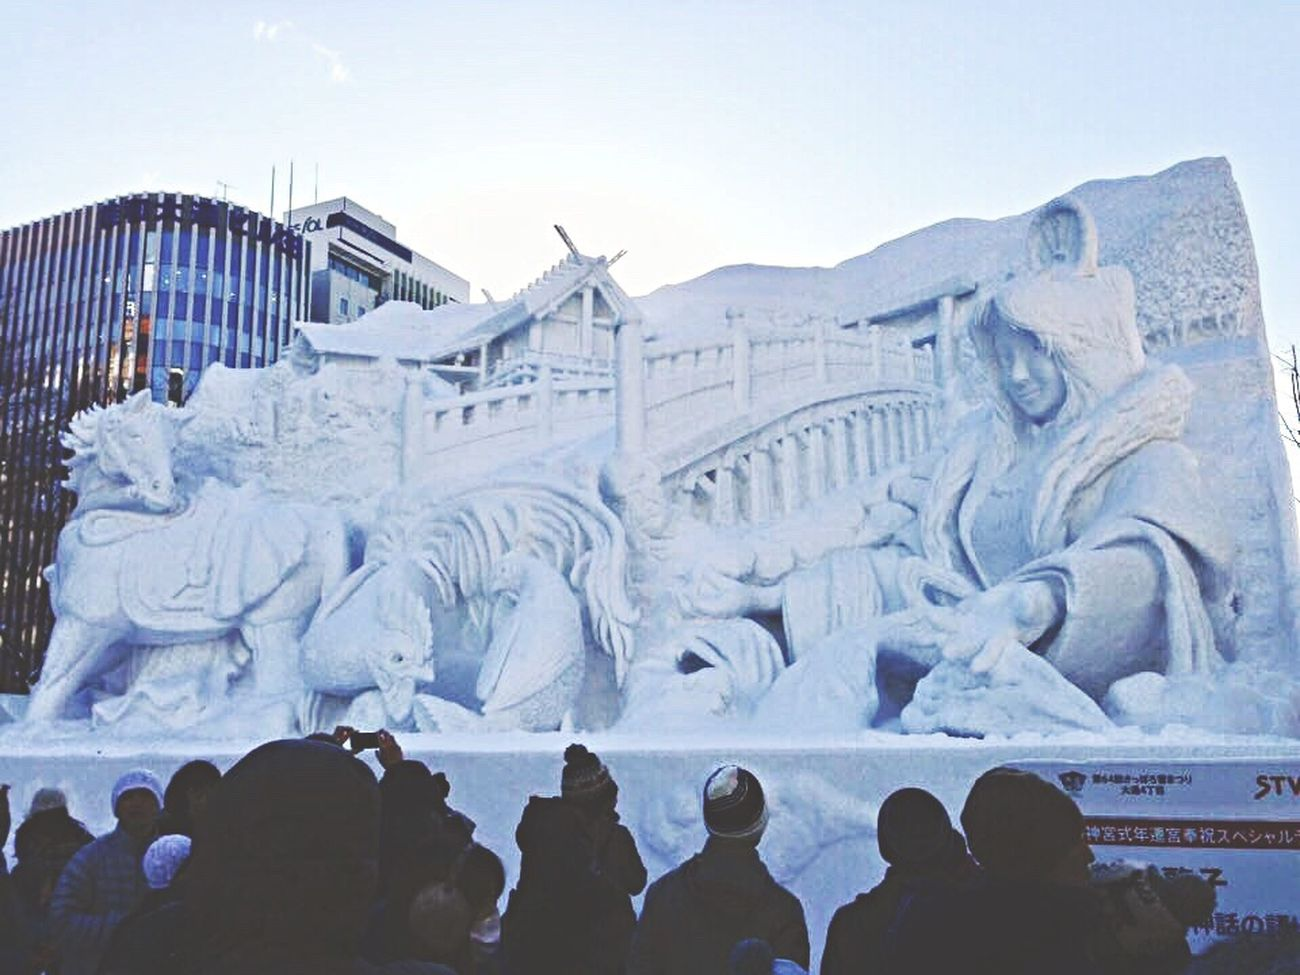 🌬 Sapporo Snow Festival in 2013✨ Odori Park Sapporo Hokkaido Japan IPhone Photography Ise Jingu Snow Art Festival Artistic Winter Wonderful Travel Destinations Showcase: February Cold Temperature BIG EyeEm Japan Cool_capture_ Sunny Day Creative Power Feeling Inspired さっぽろ雪まつり 大通公園 札幌 北海道